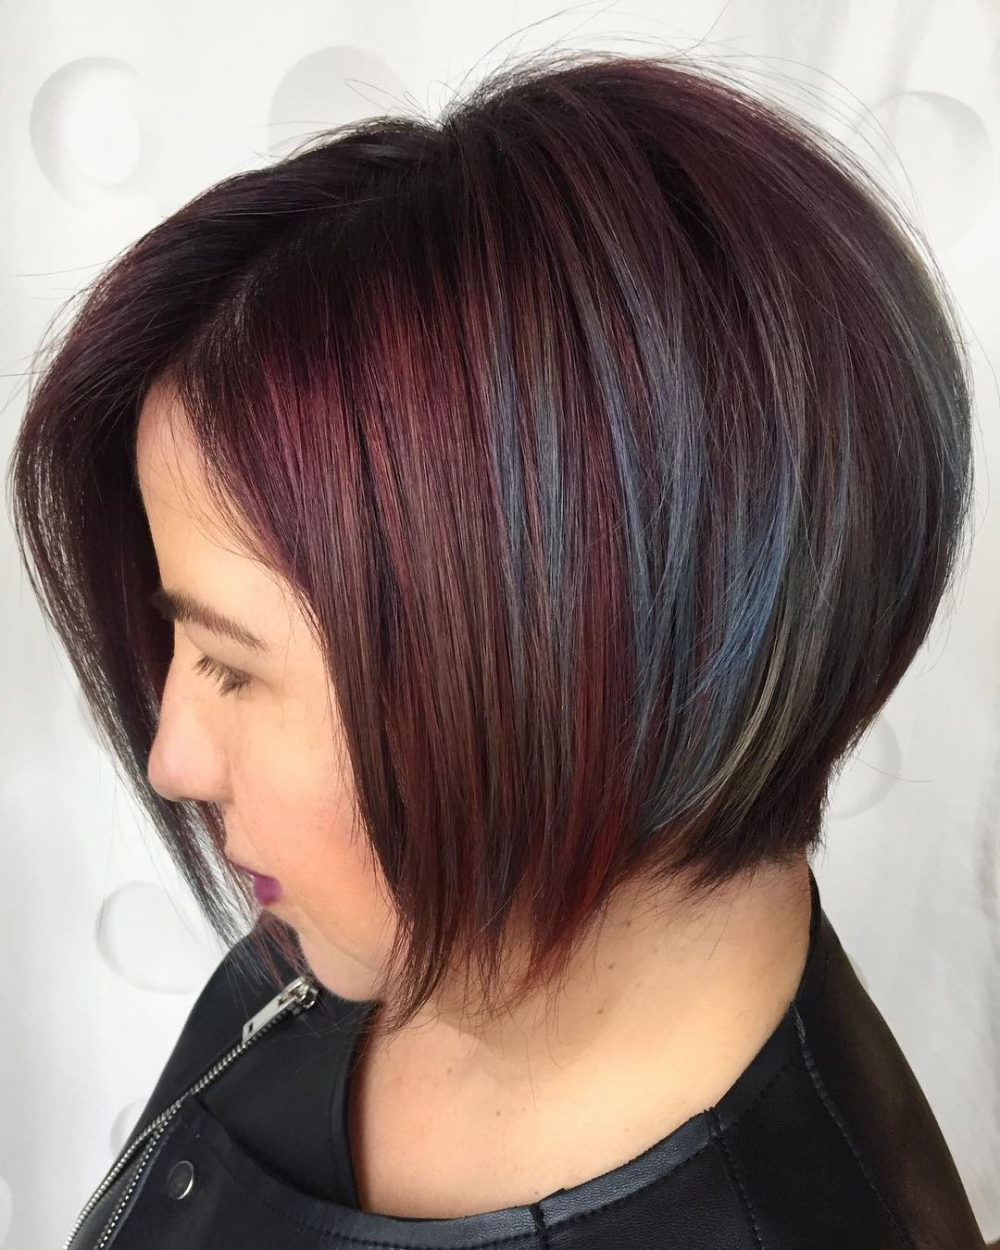 34 Greatest Short Haircuts And Hairstyles For Thick Hair For 2018 With Short Medium Haircuts For Thick Hair (View 10 of 25)